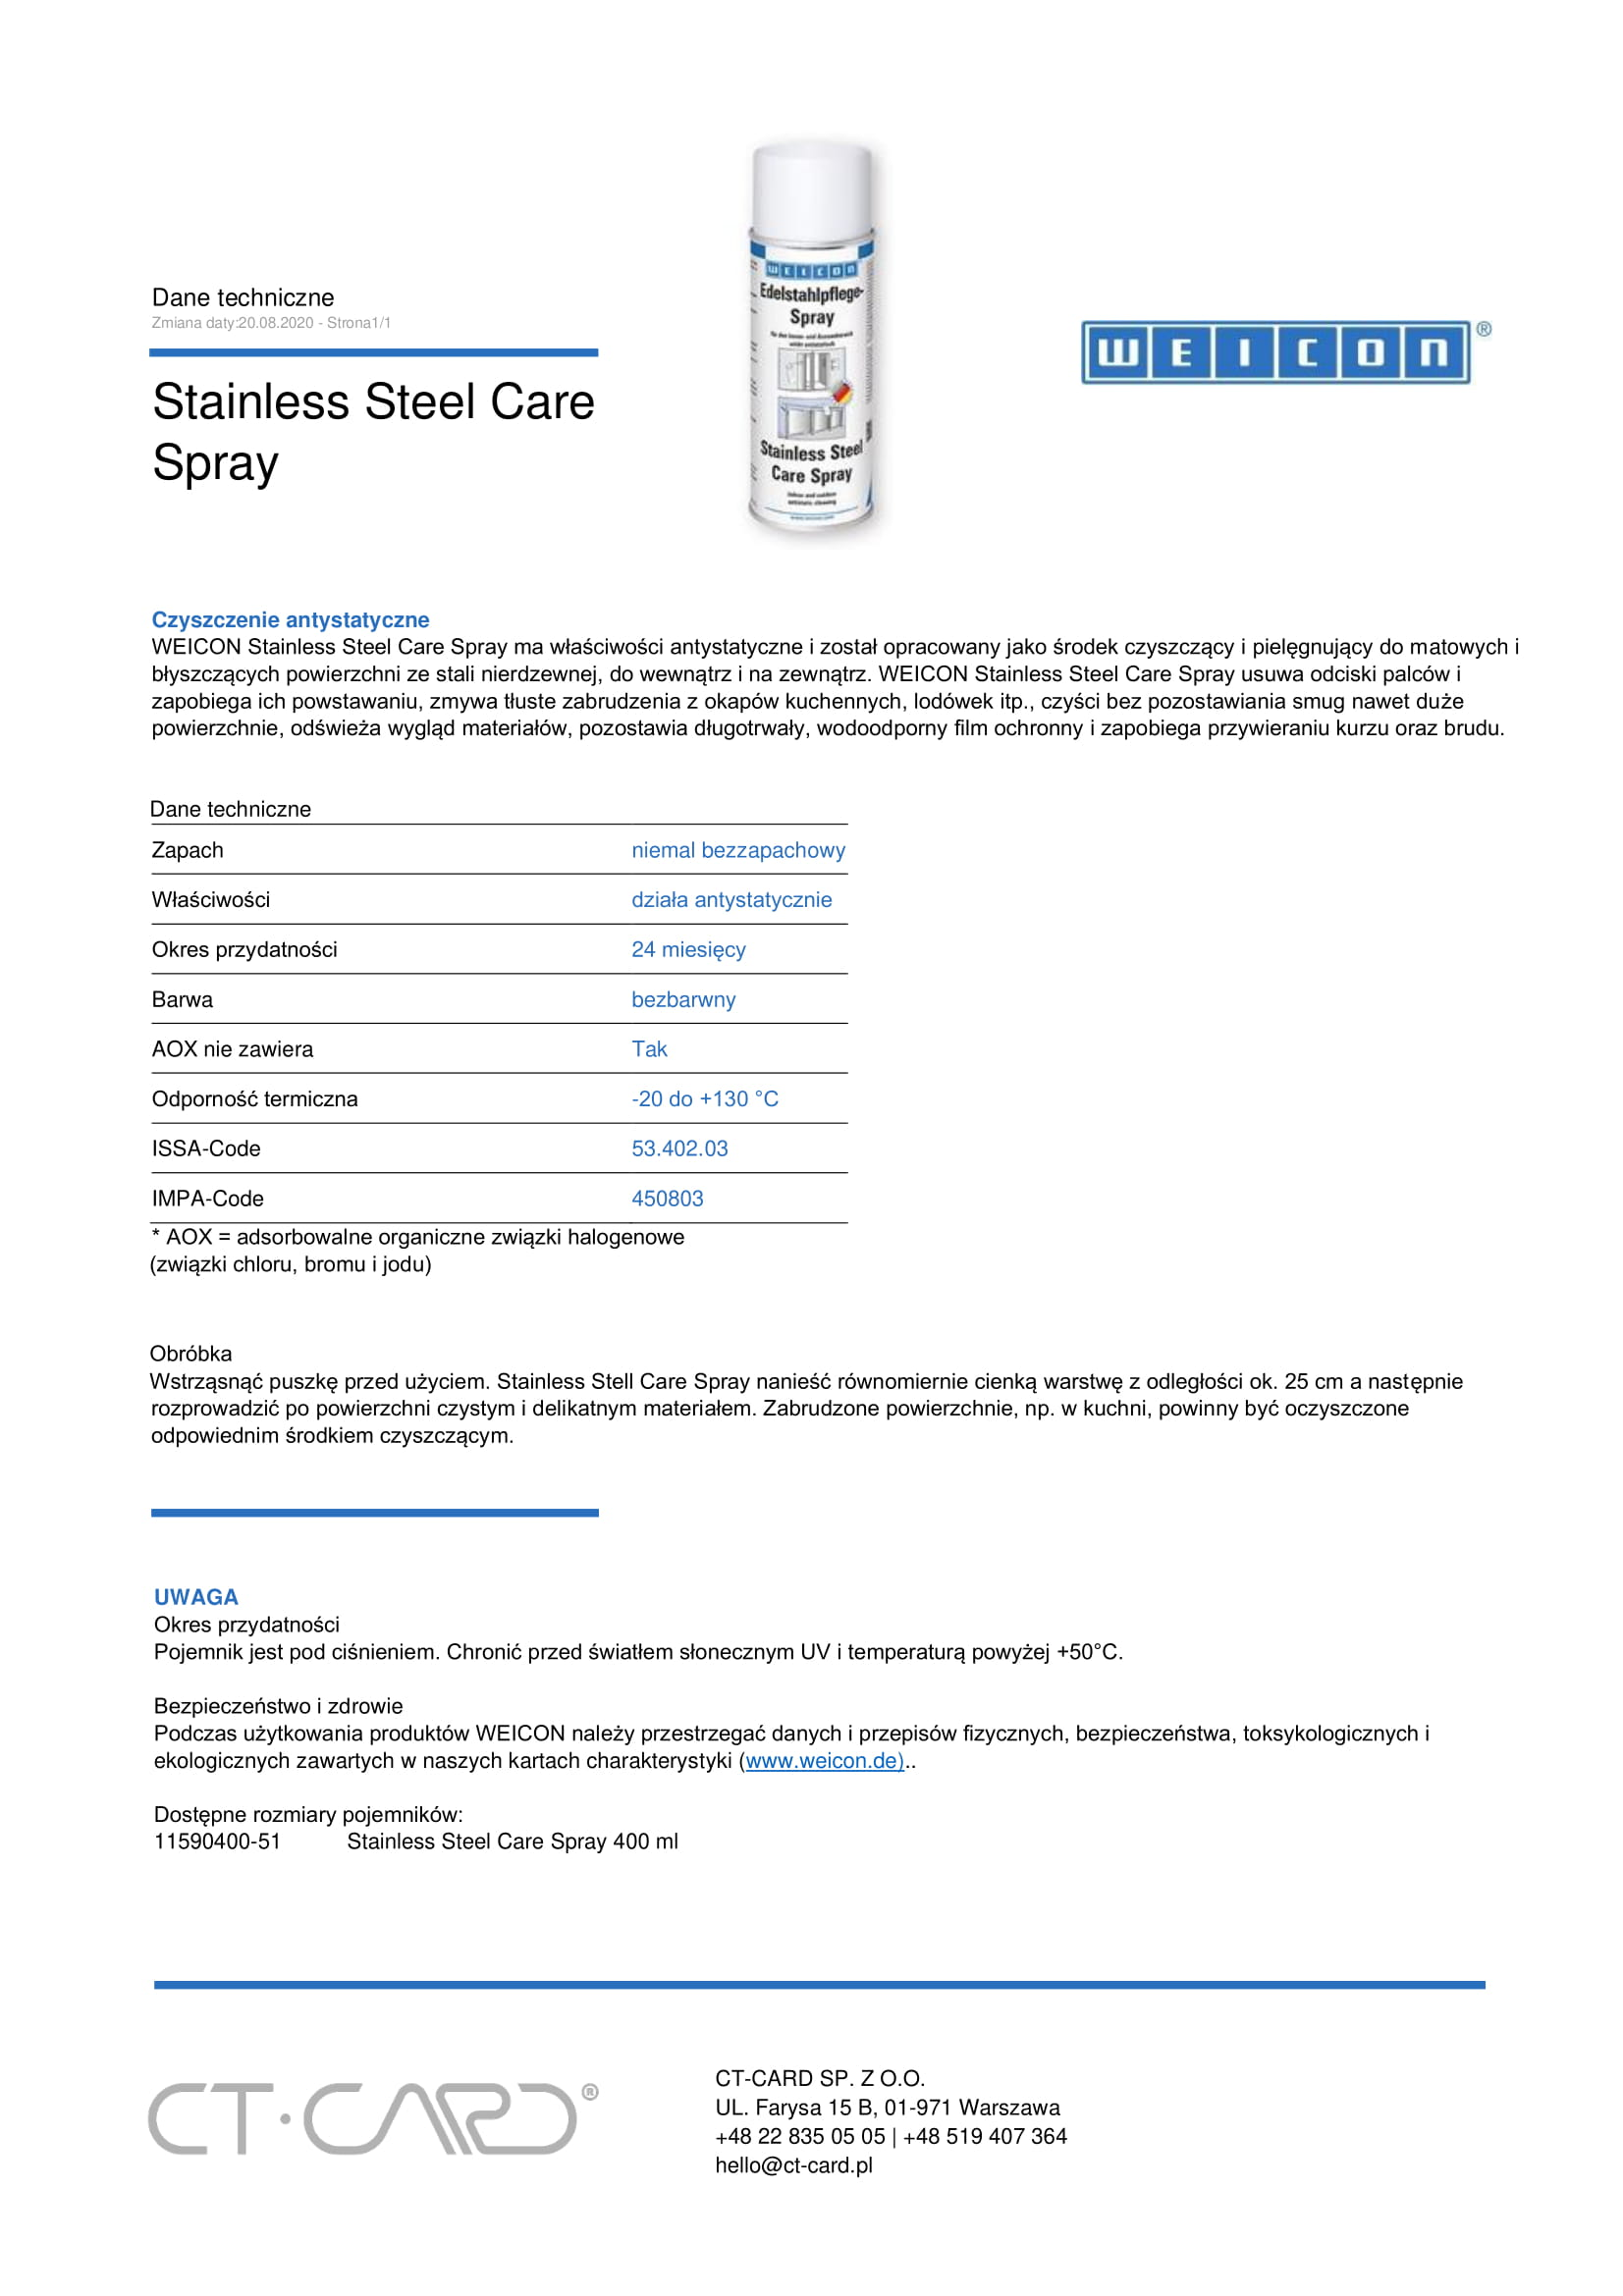 Stainless Steel Care Spray-1